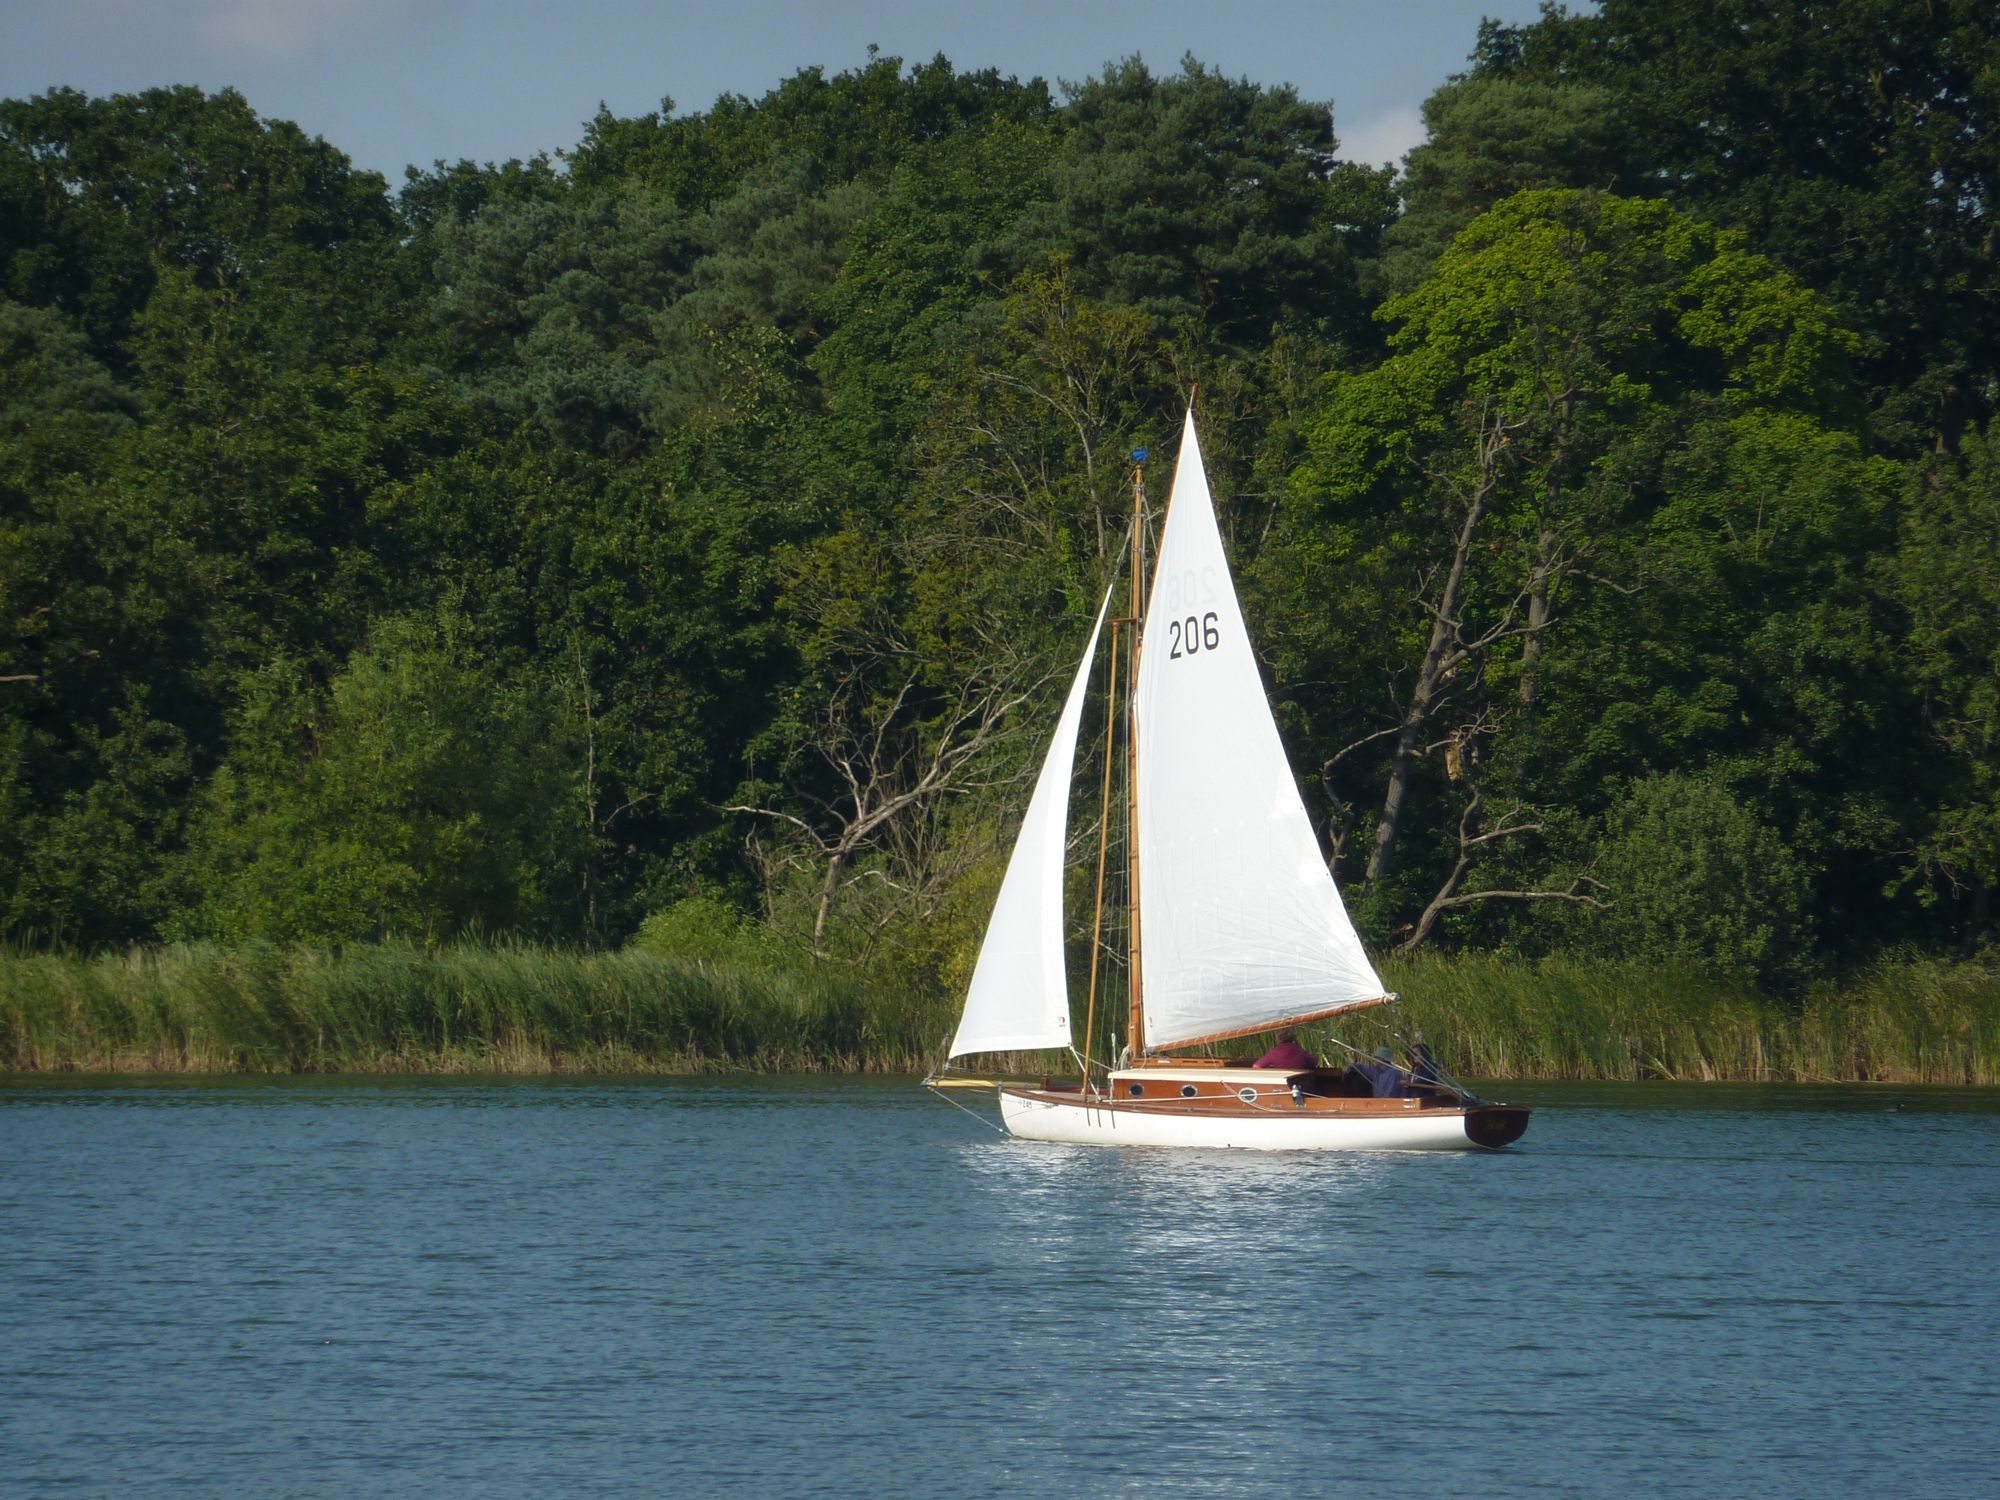 Hotels, Cottages, B&Bs & Glamping in the Norfolk Broads National Park - Cool Places to Stay in the UK